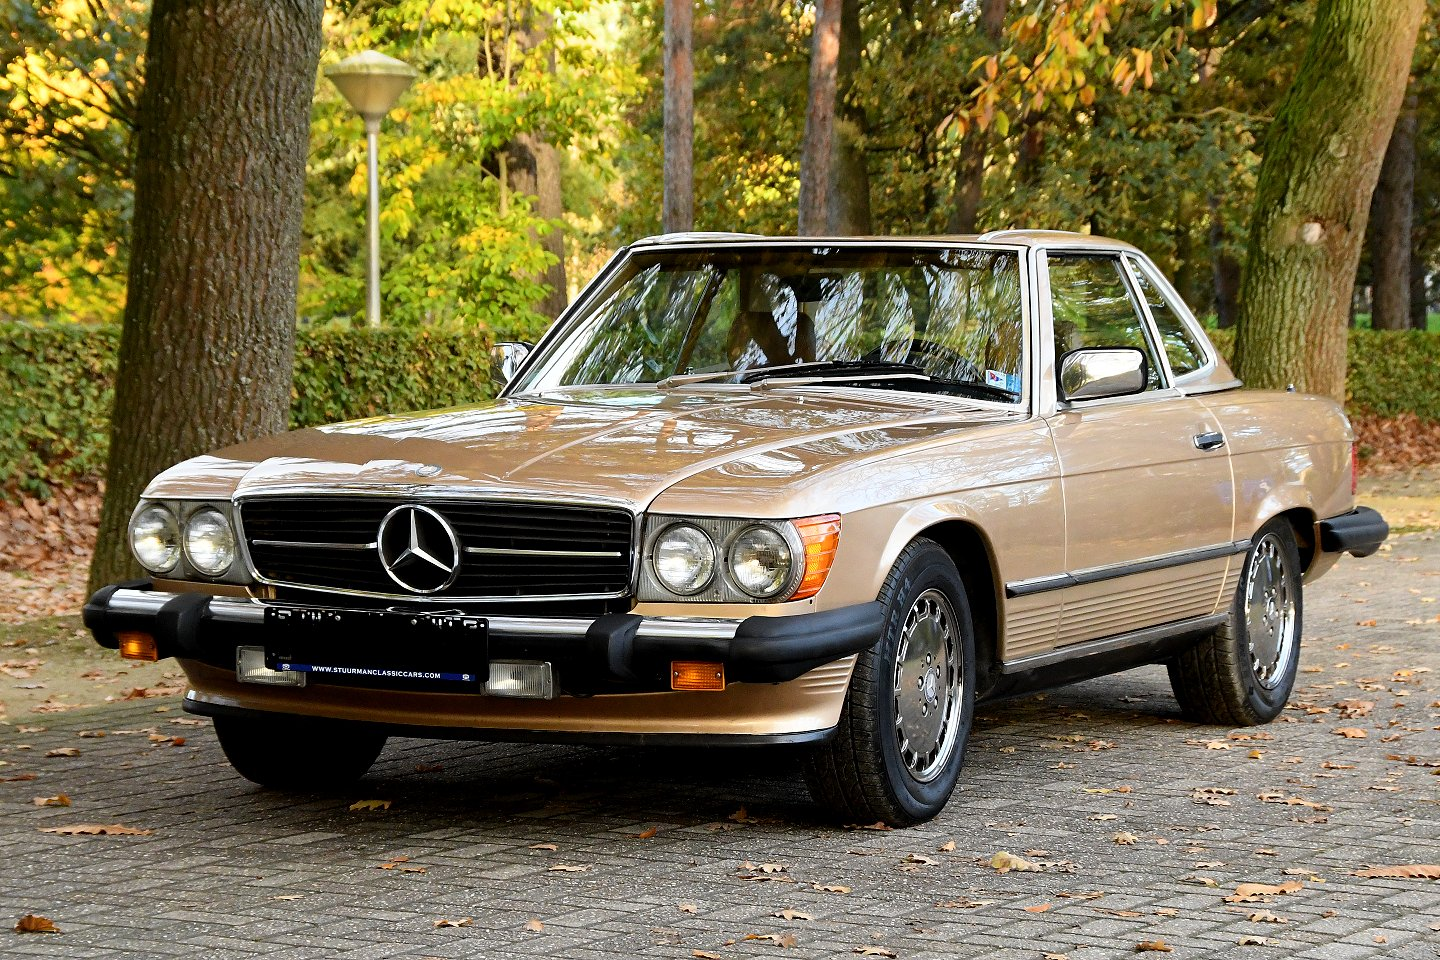 small resolution of 1986 mercedes benz 560 engine diagram data wiring diagram 1986 mercedes benz 560 engine diagram